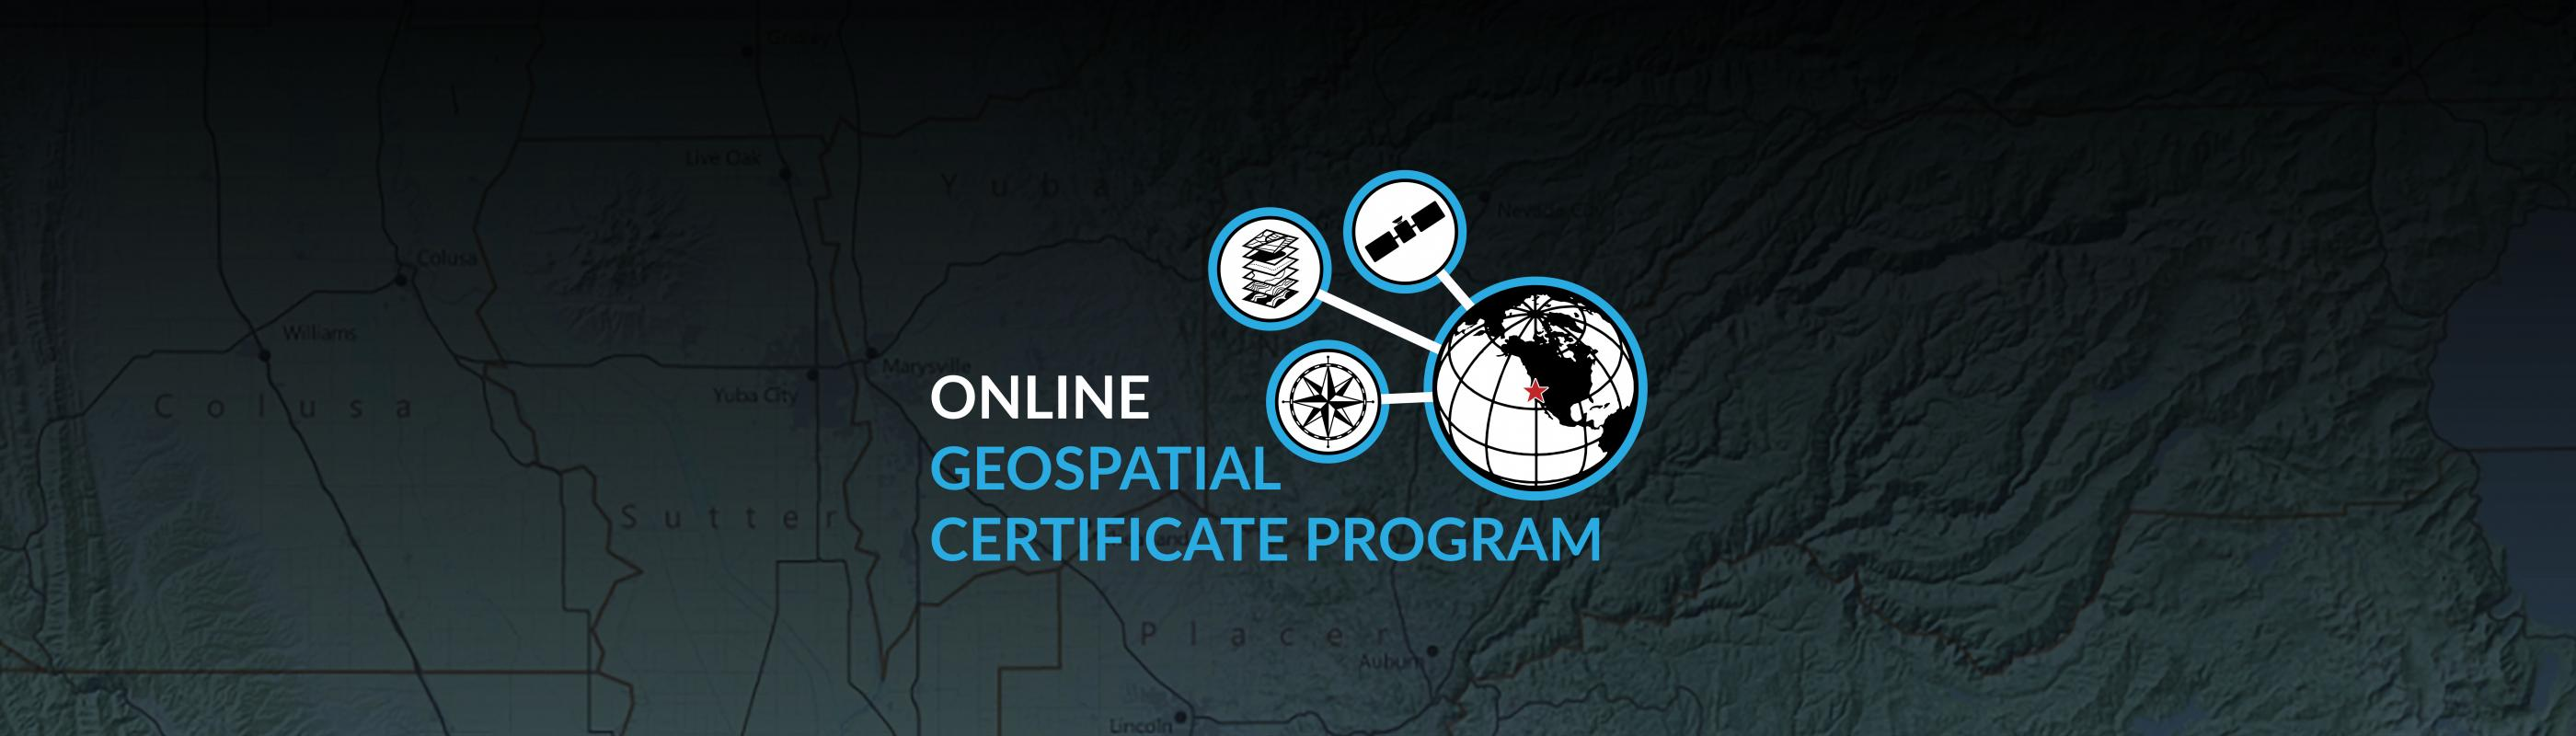 Intermediate Gis College Of Extended Education Global Engagement